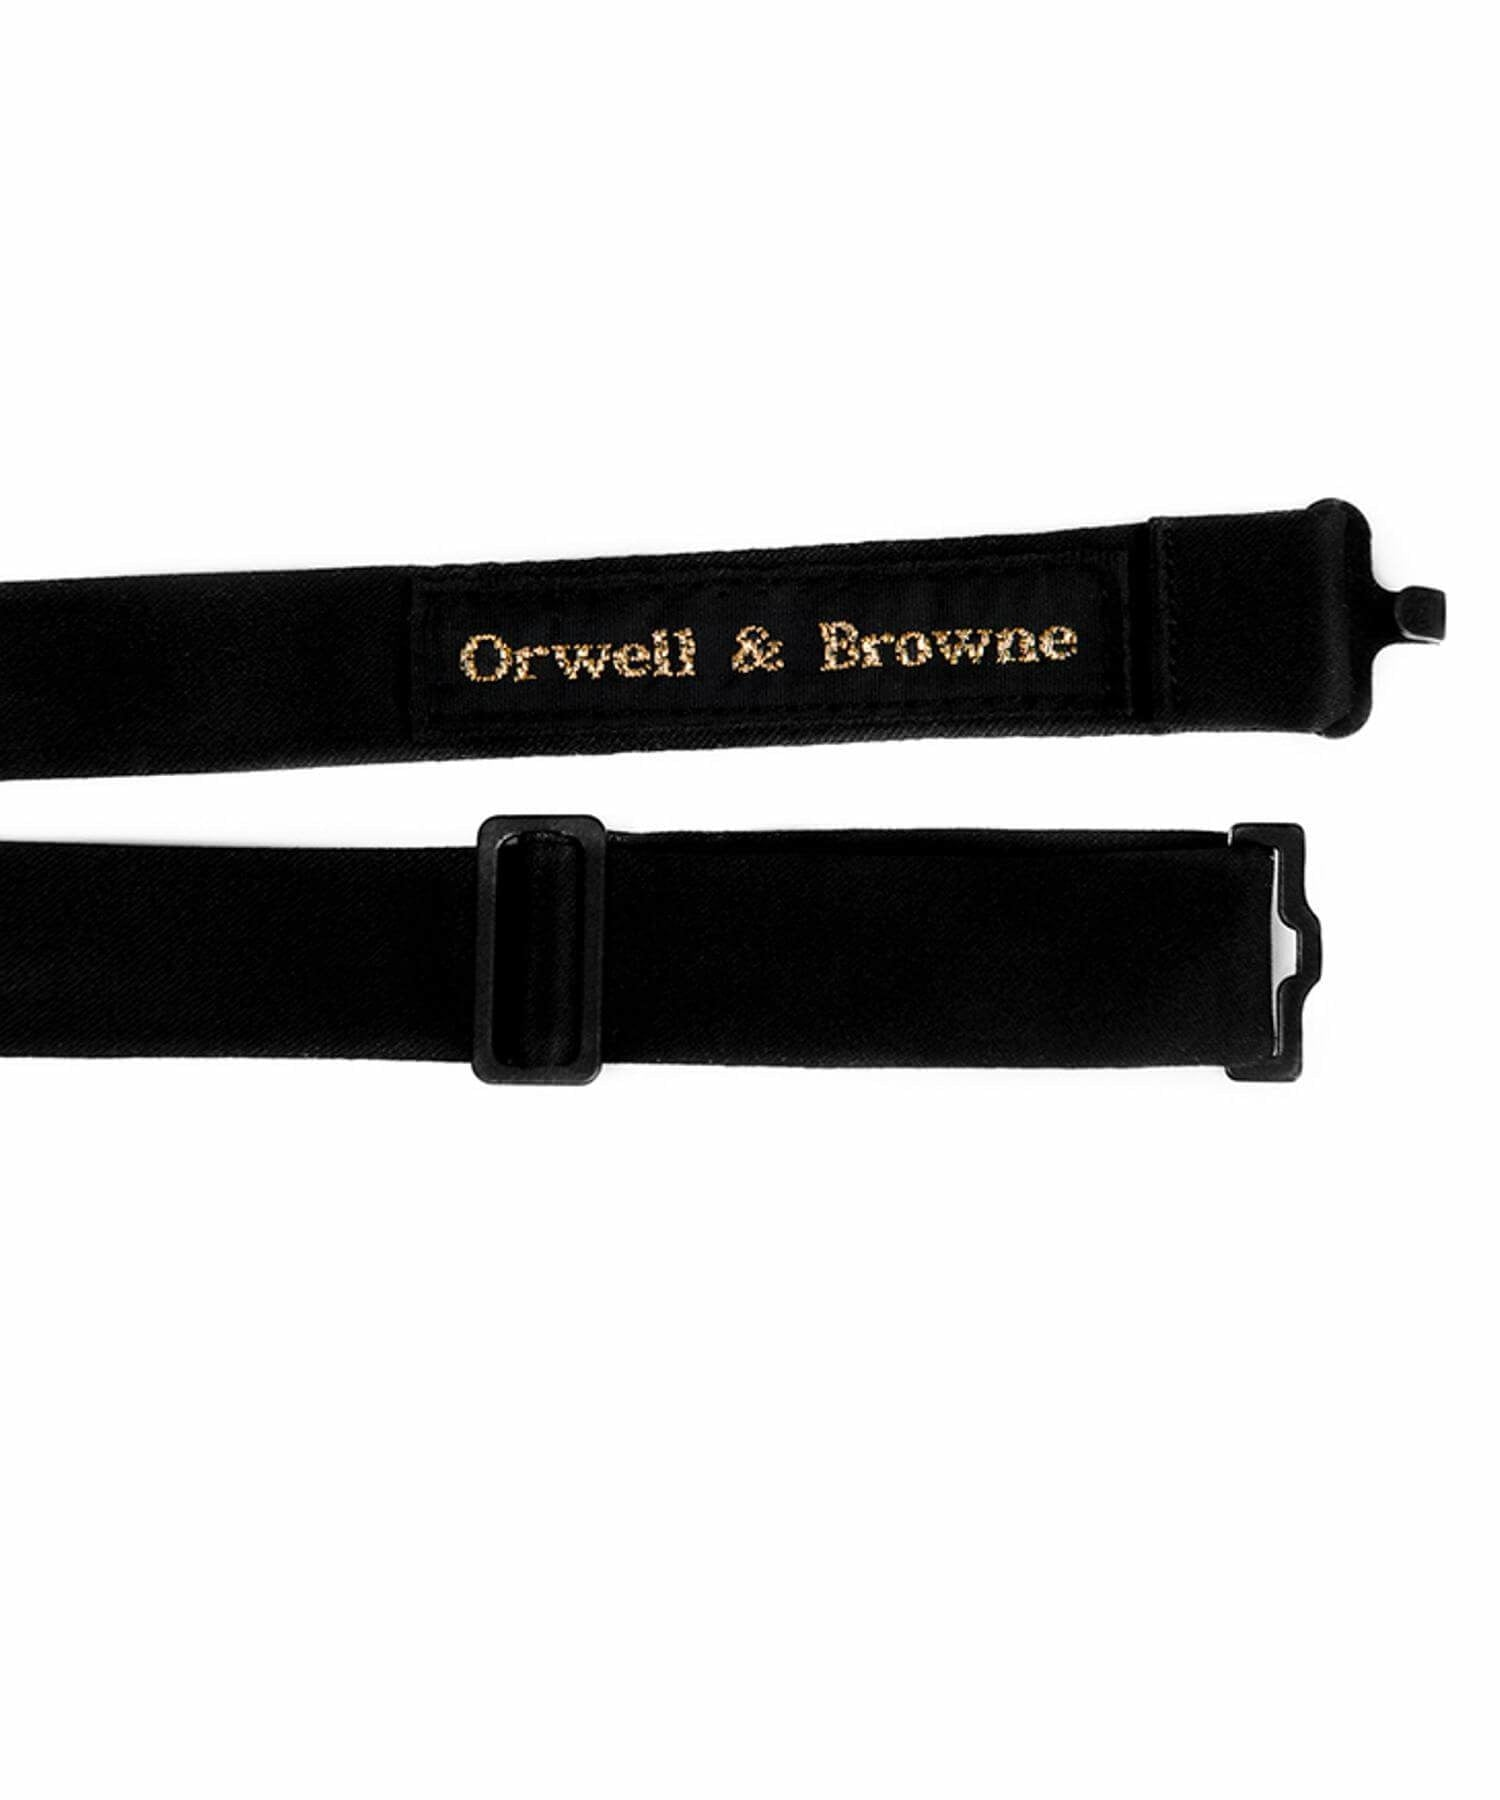 Donegal Tweed Bow Tie - Motley Blends - [Orwell & Browne] - Mens Accessories - Irish Gifts